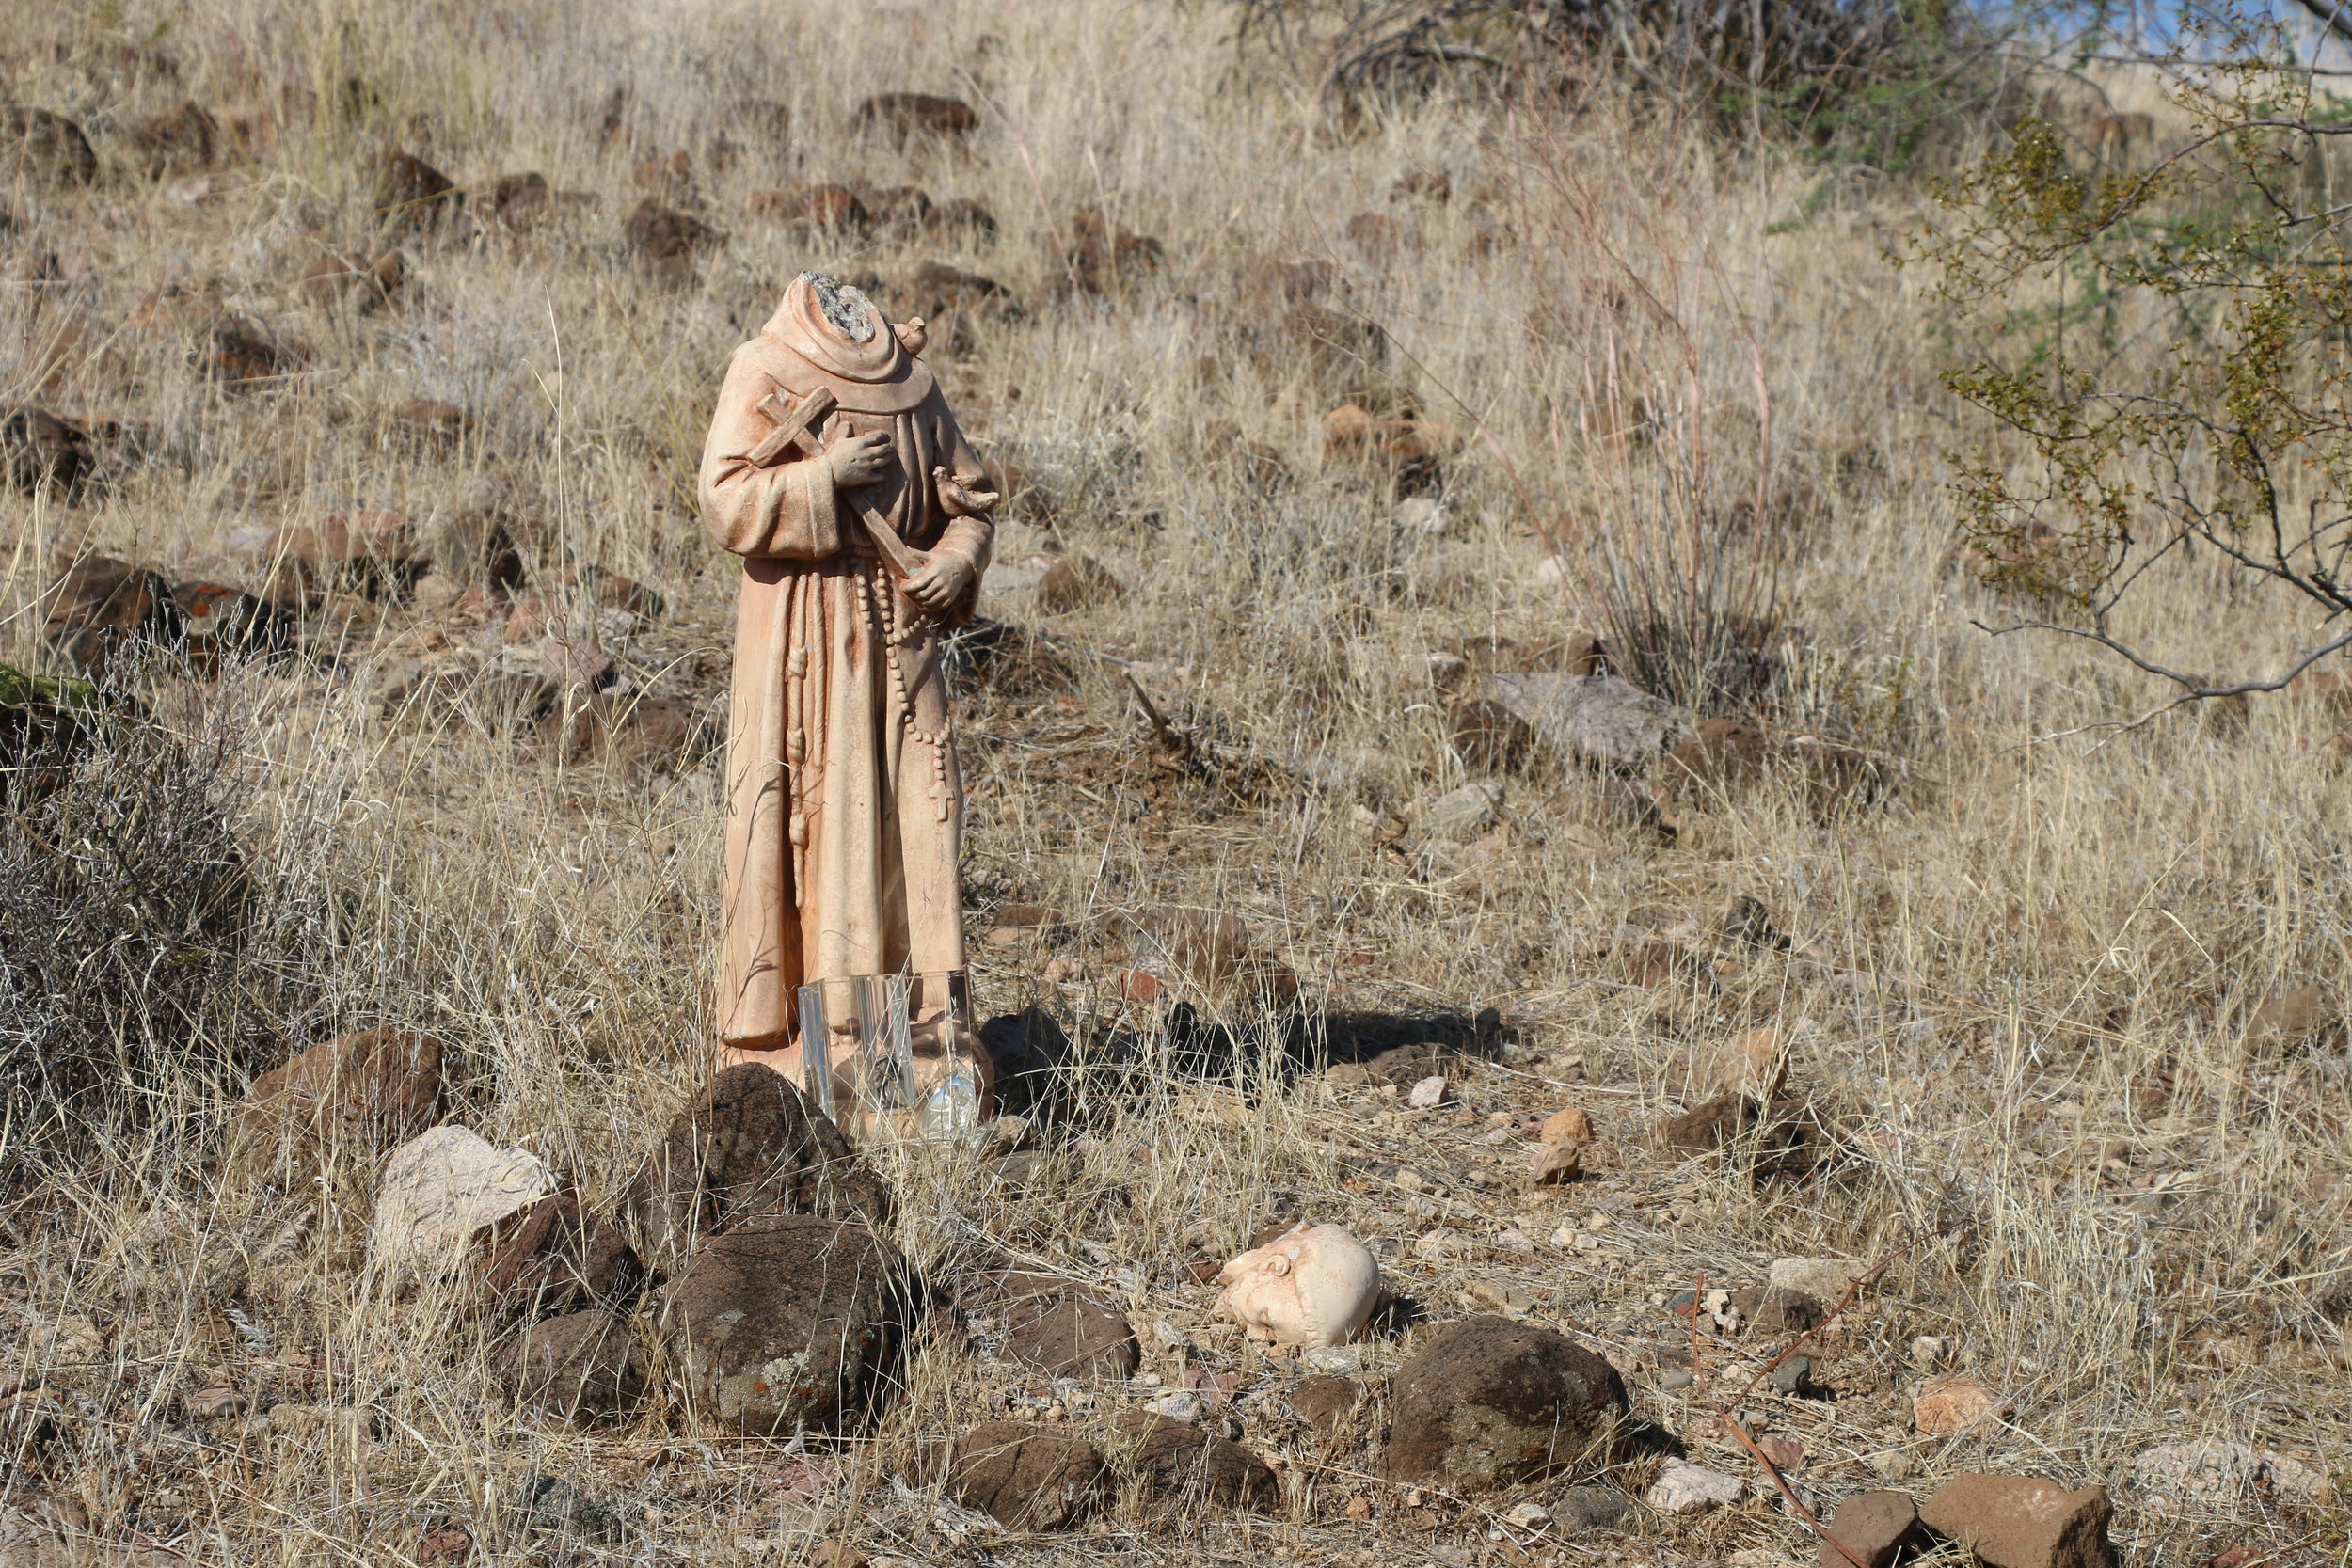 More modern religious artifacts remain, but have seen the effects of the weather.